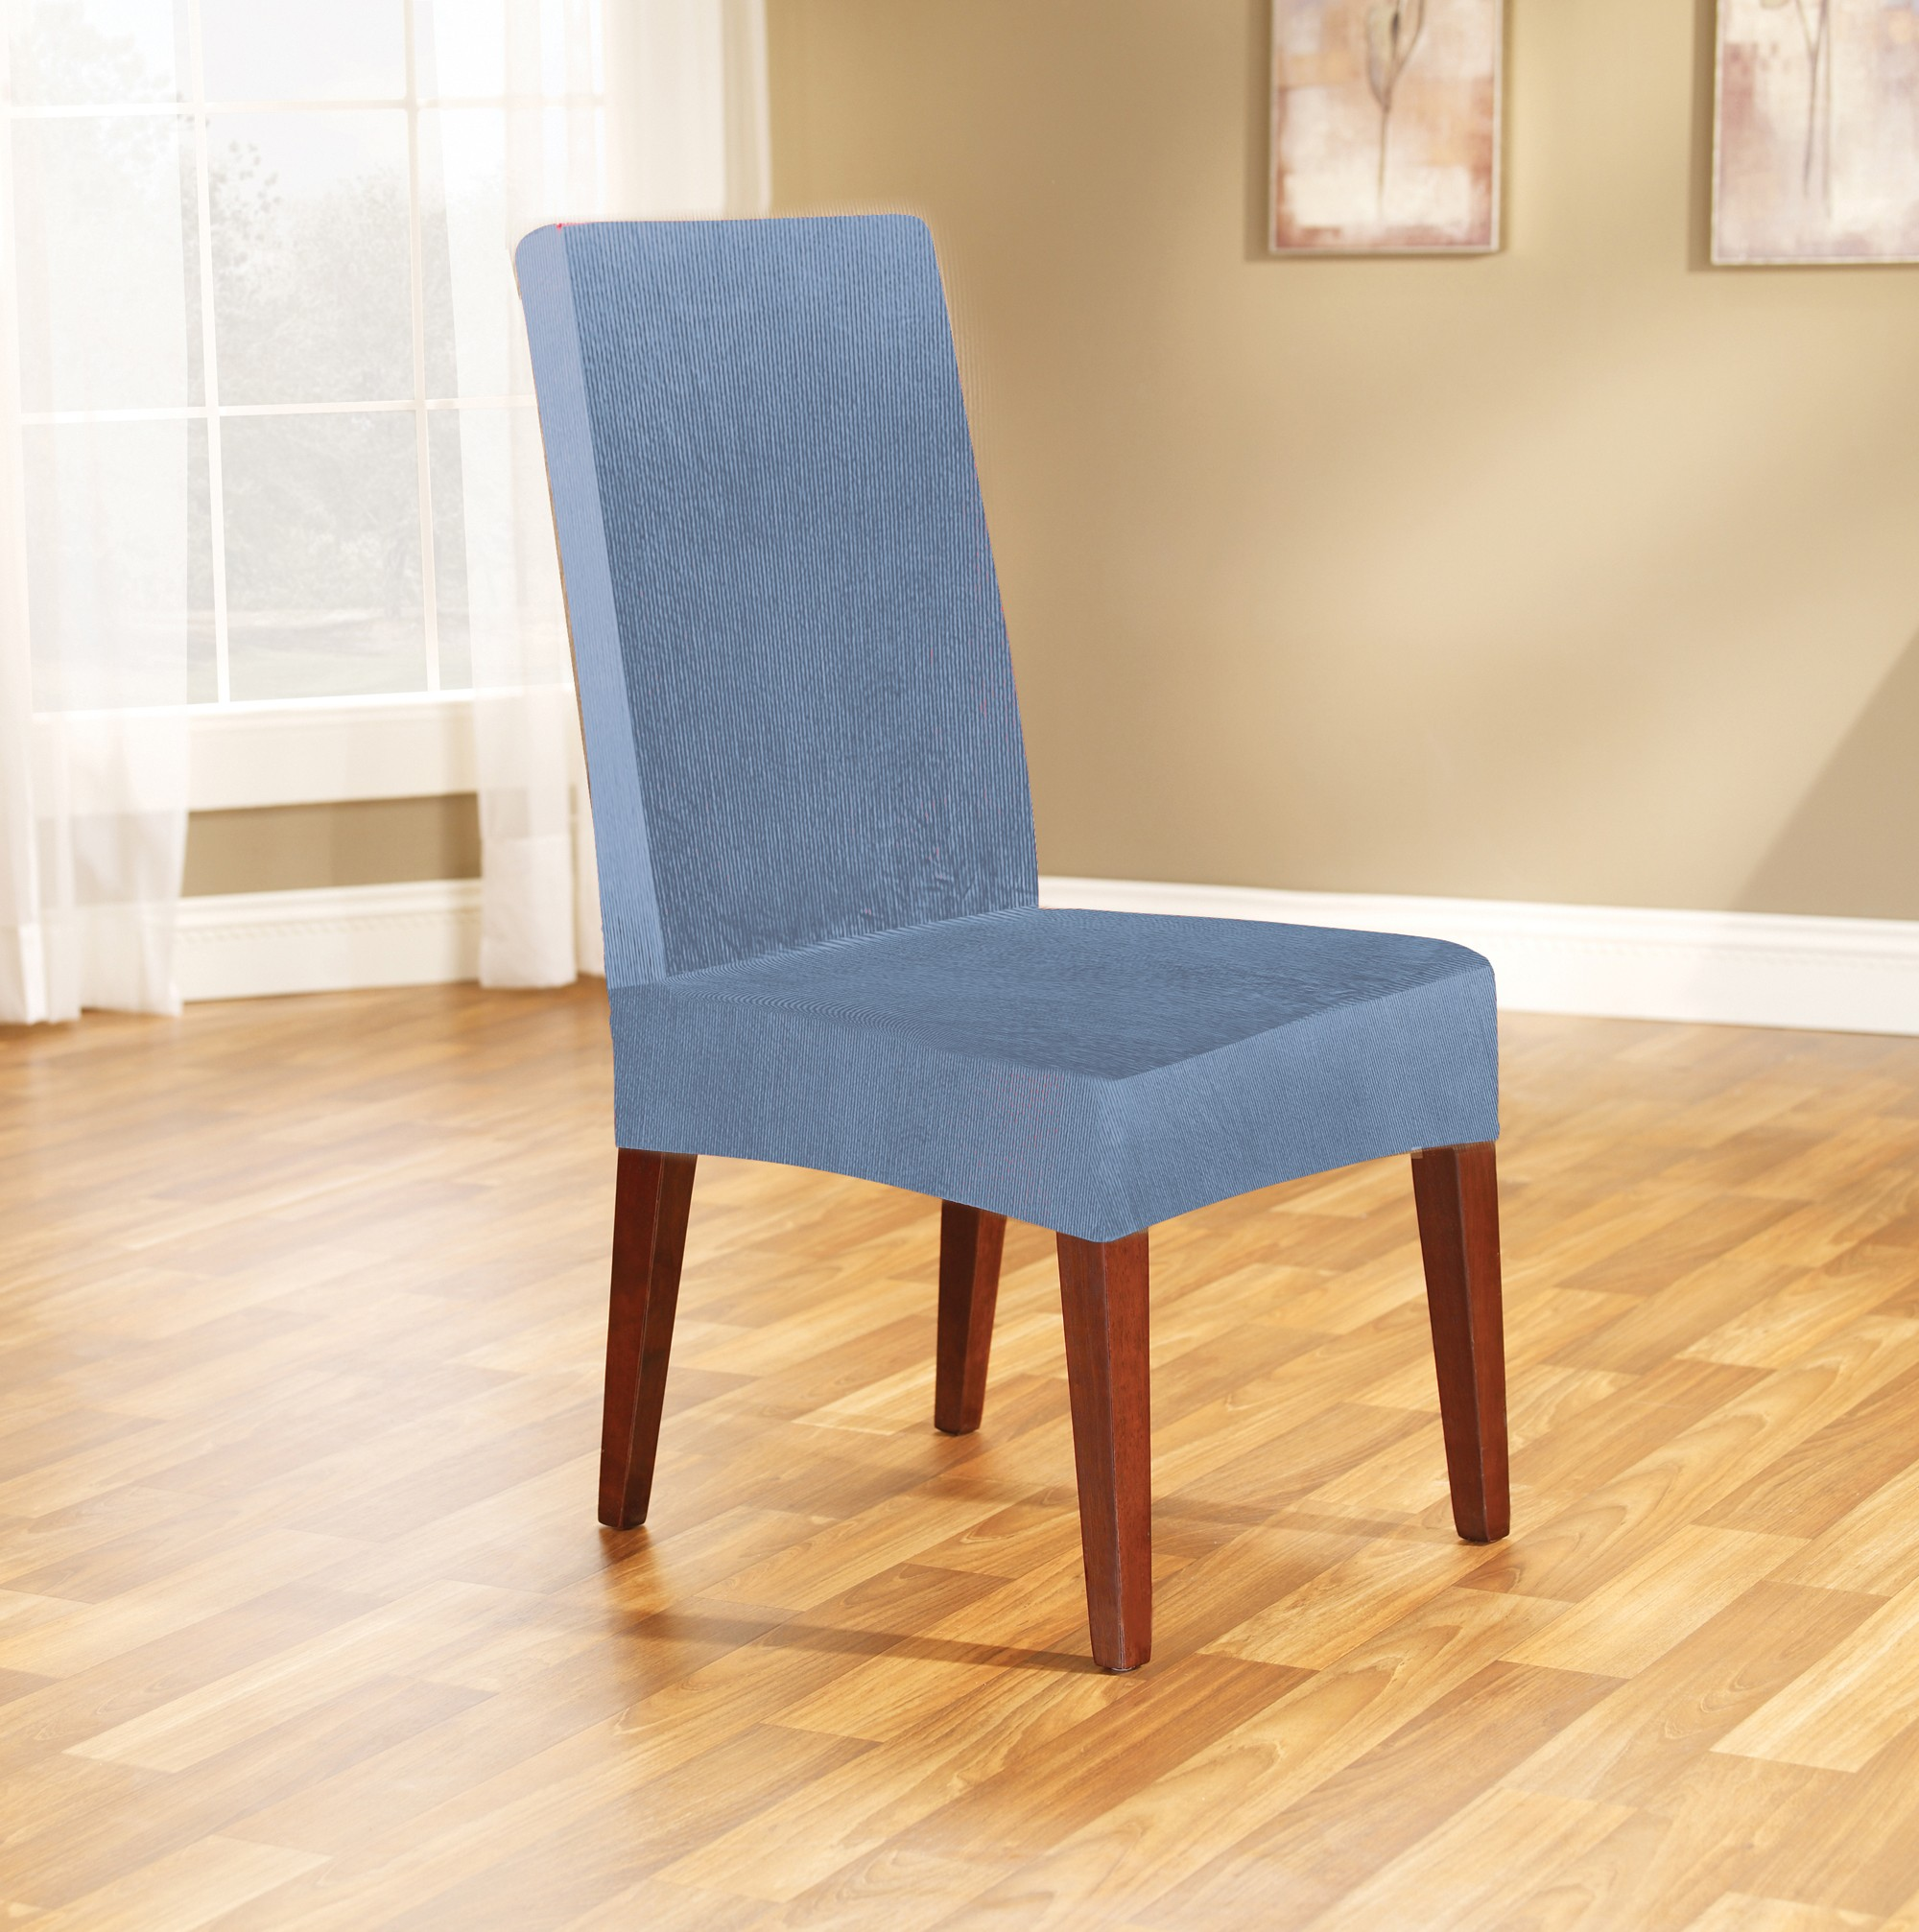 dining room chair covers blue 28 images 4x stretch  : diningchaircover federalblue from homee.biz size 2000 x 2014 jpeg 554kB